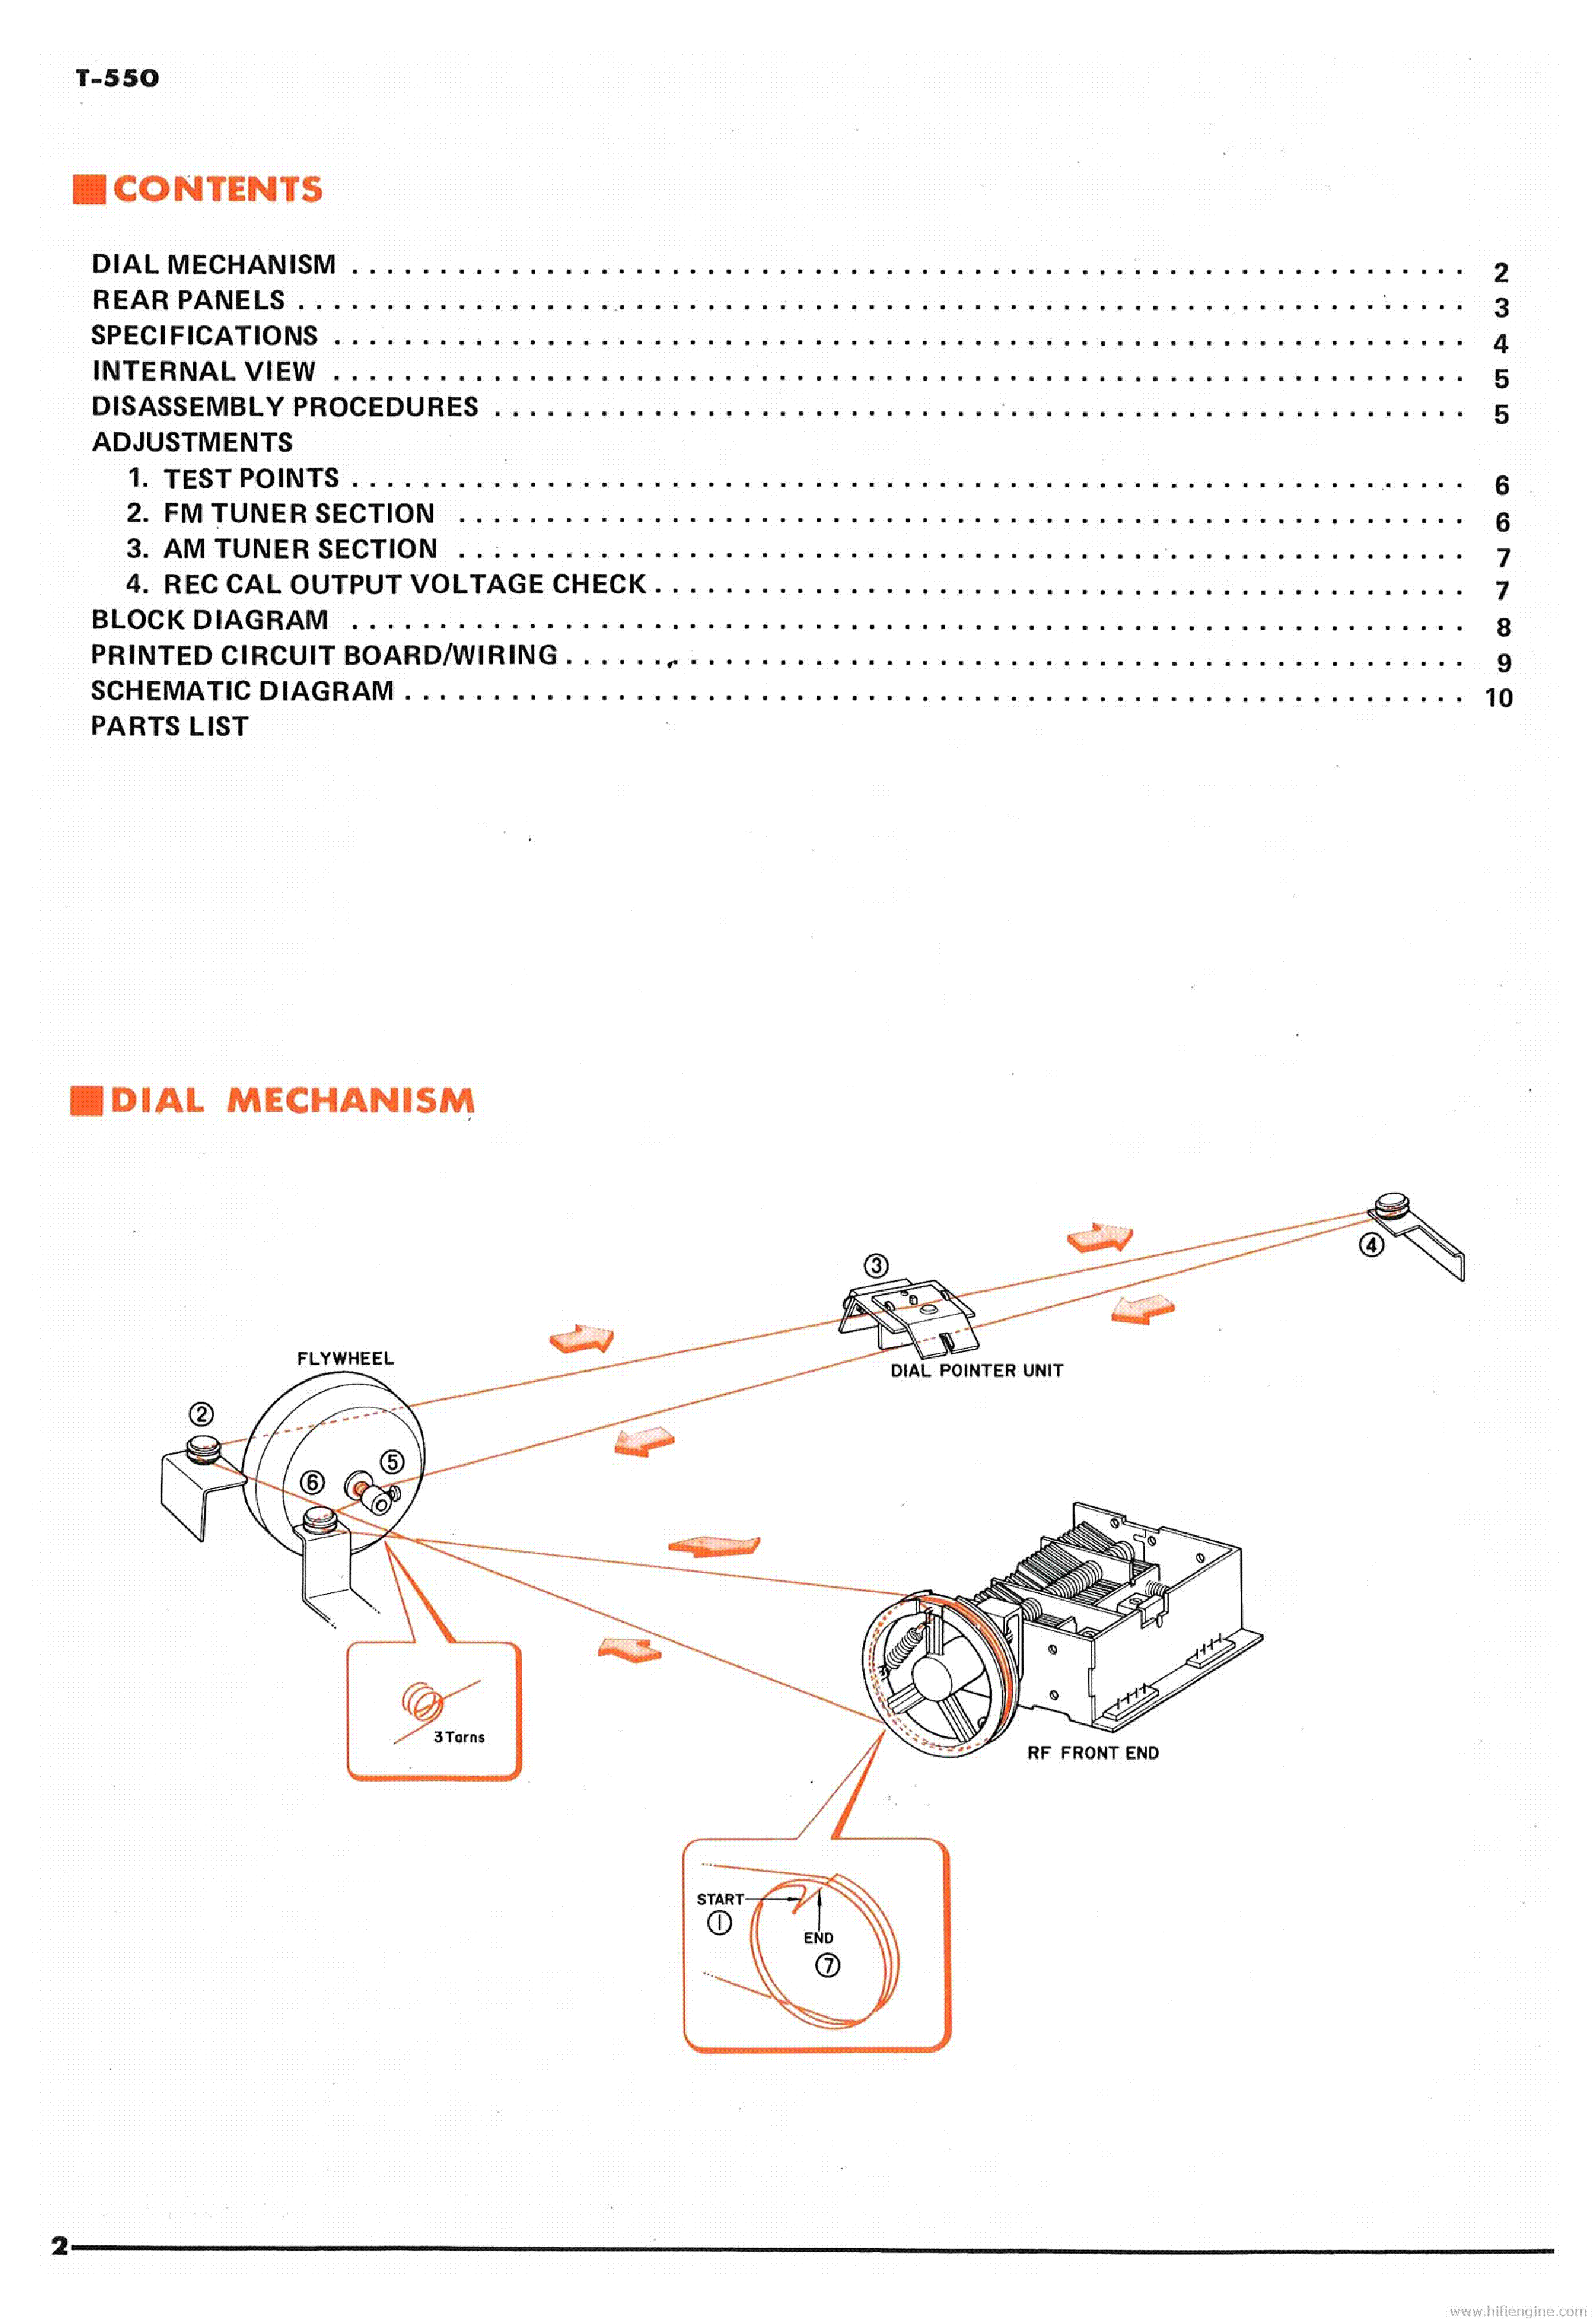 YAMAHA T-550 Service Manual download, schematics, eeprom